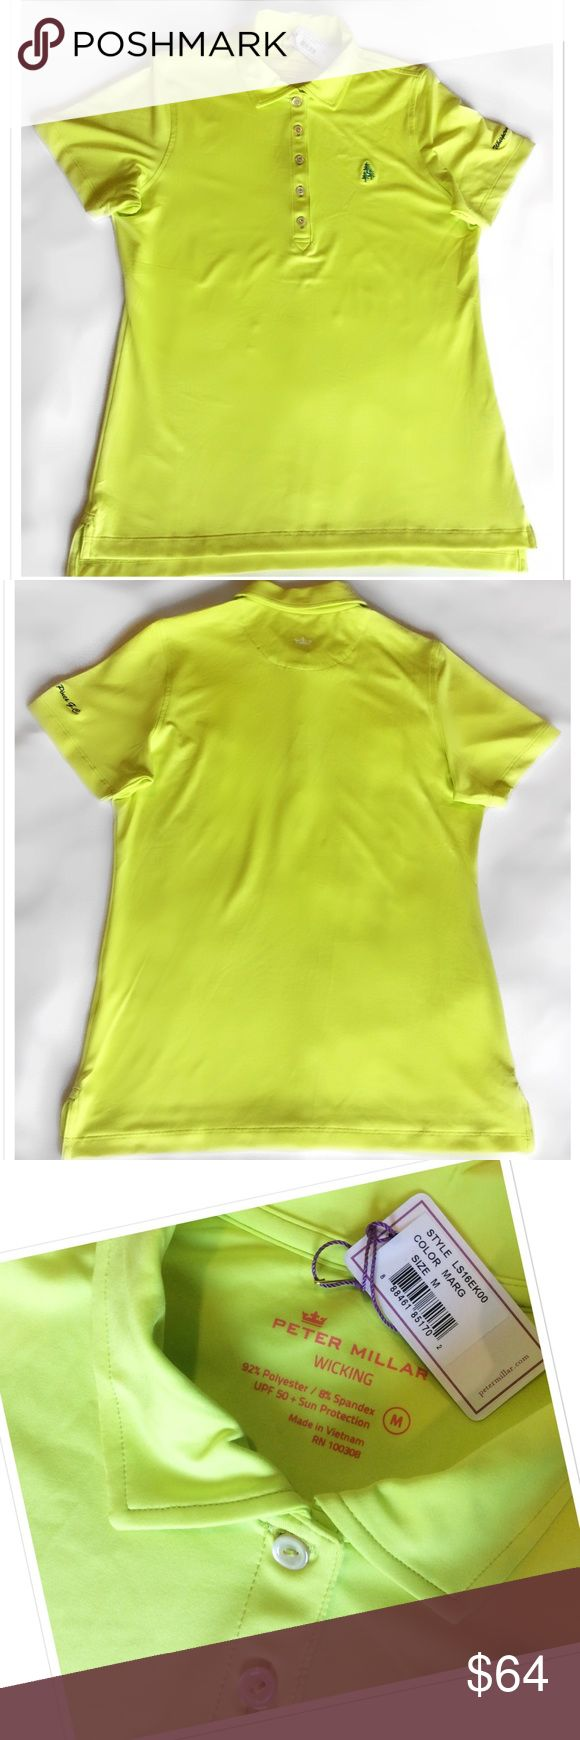 Peter Millar UPF 50 Golf Shirt Brand new with tags. Perfect condition. Peter Millar Wicking. UPF 50 Sun Protection. Safety Green. Short sleeve 5 button w/collar. Polyester Spandex Blend. Whispering Pines Golf Club. Made in Vietnam. Bundle for a fantastic discount. Also open to offers. Peter Millar Tops Tees - Short Sleeve